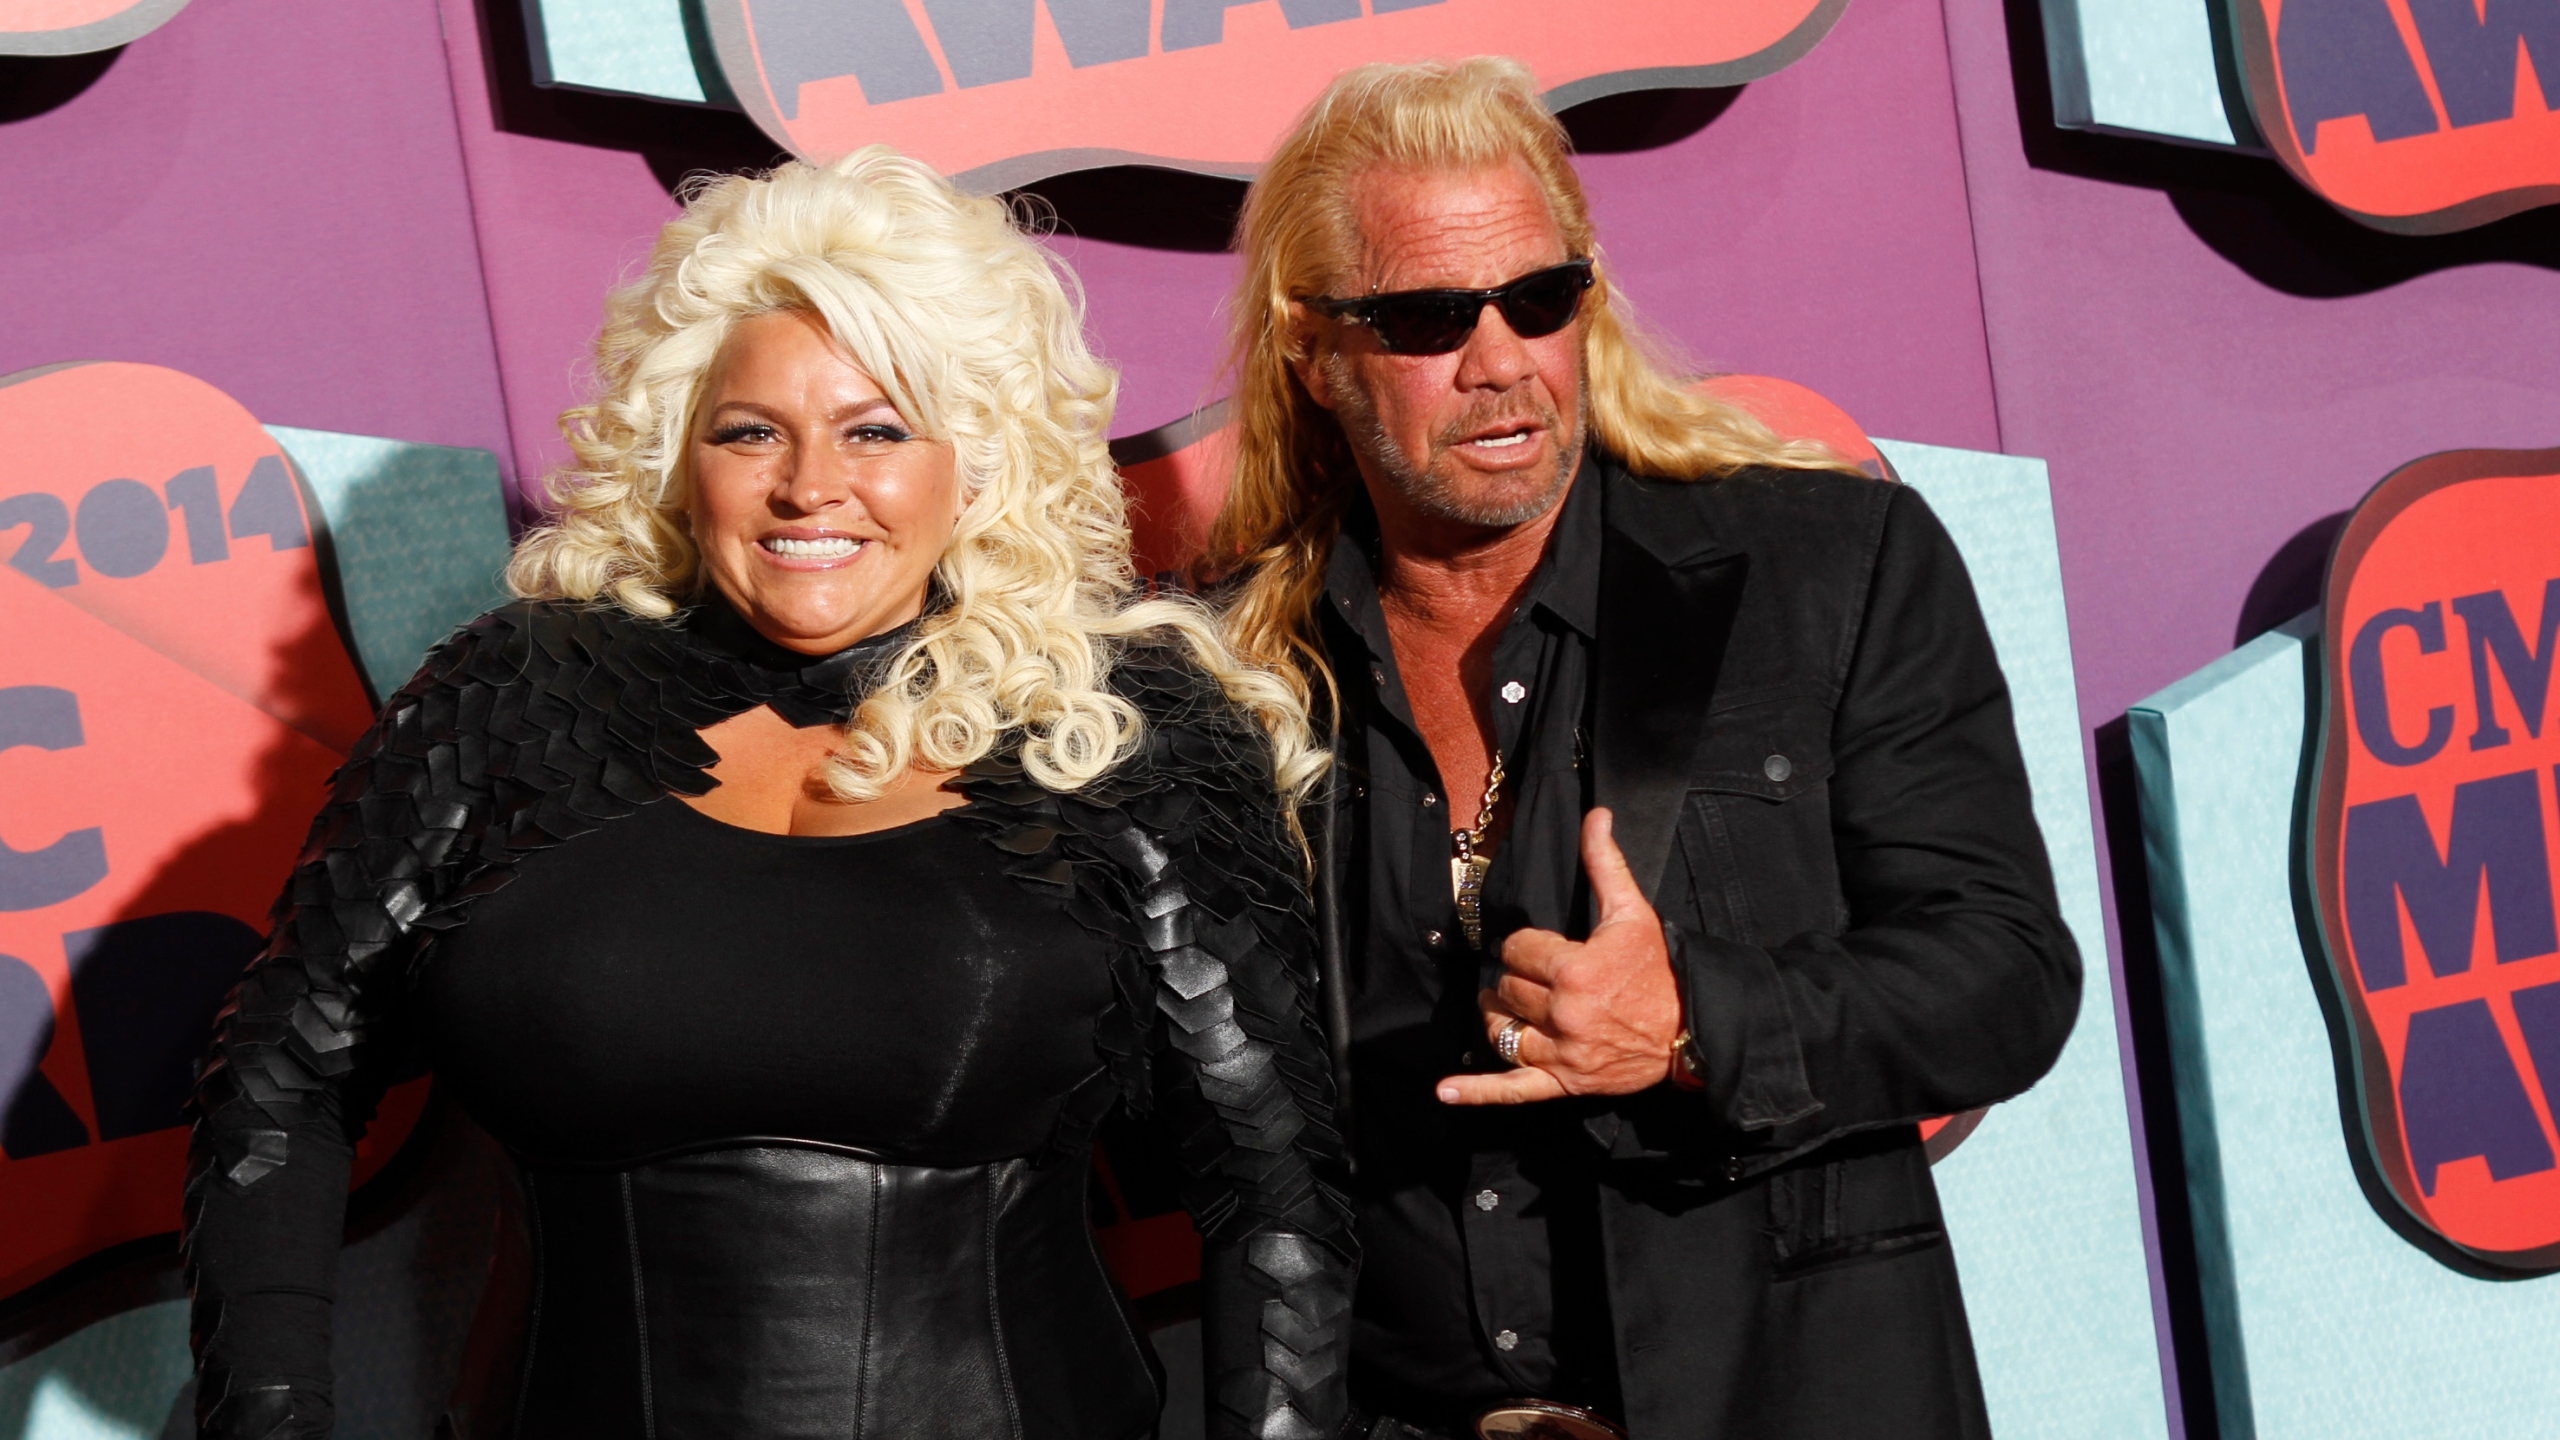 Beth Chapman Wife Of Dog The Bounty Hunter Dies At 51